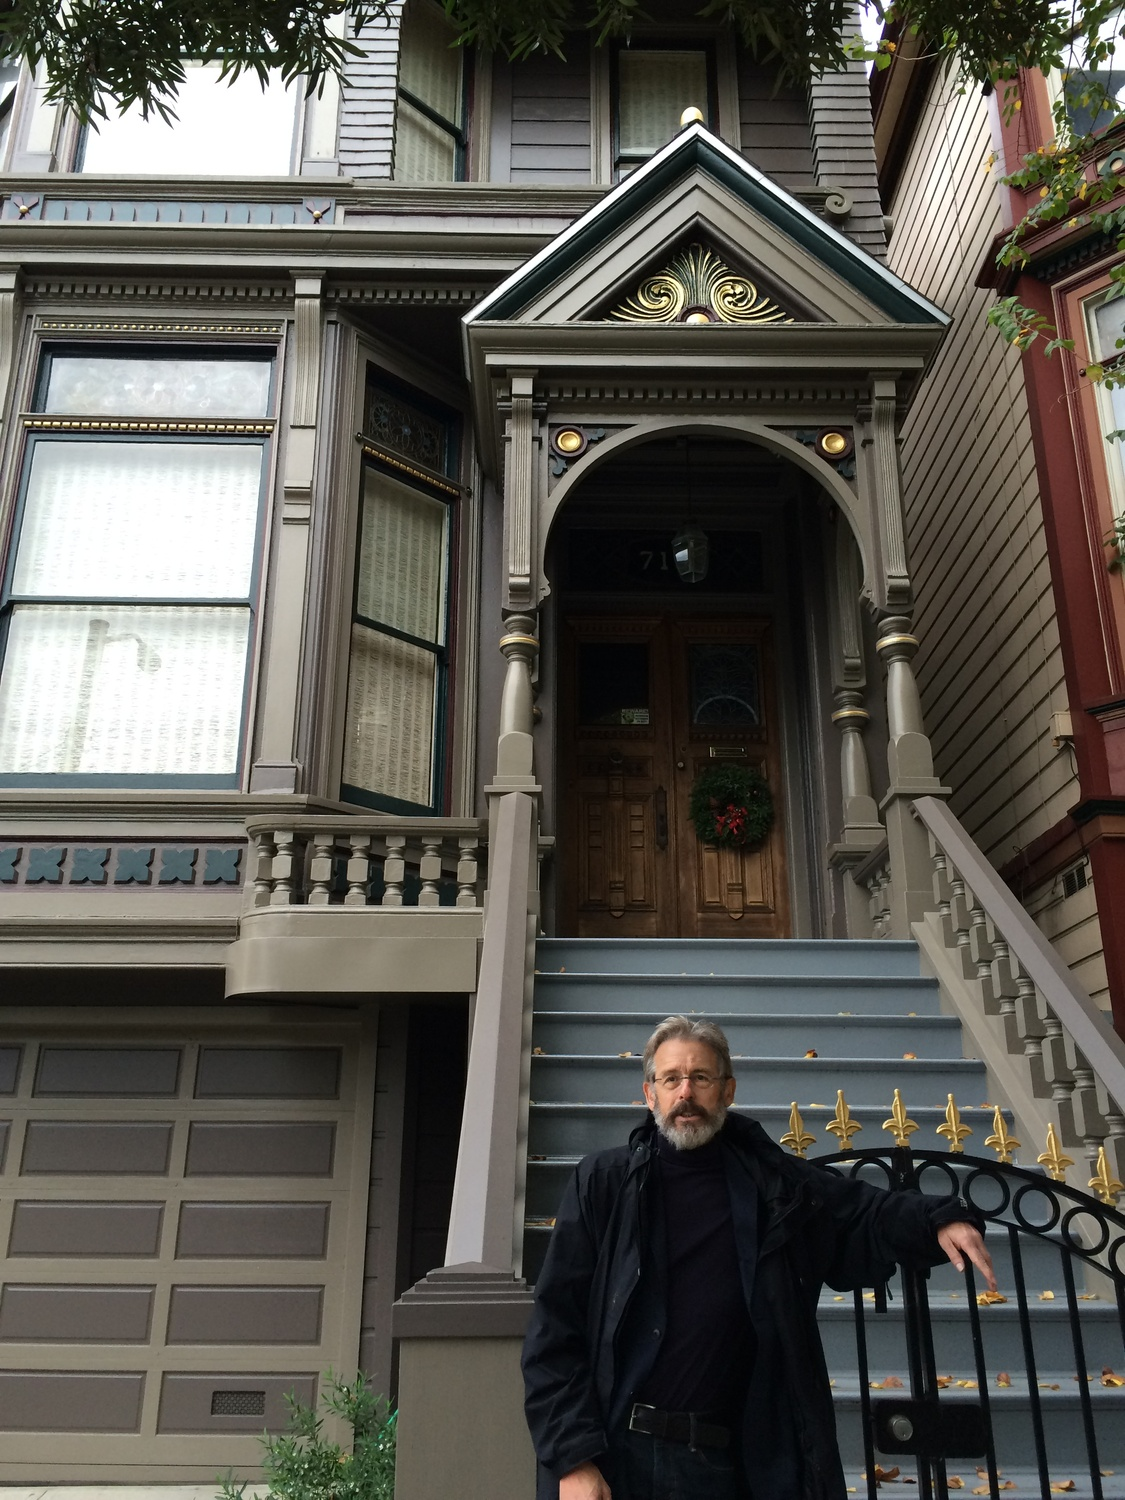 Former Crimson Managing Editor Hendrik Hertzberg '65 poses in front of the house of Jerry Garcia of the Grateful Dead in San Francisco.